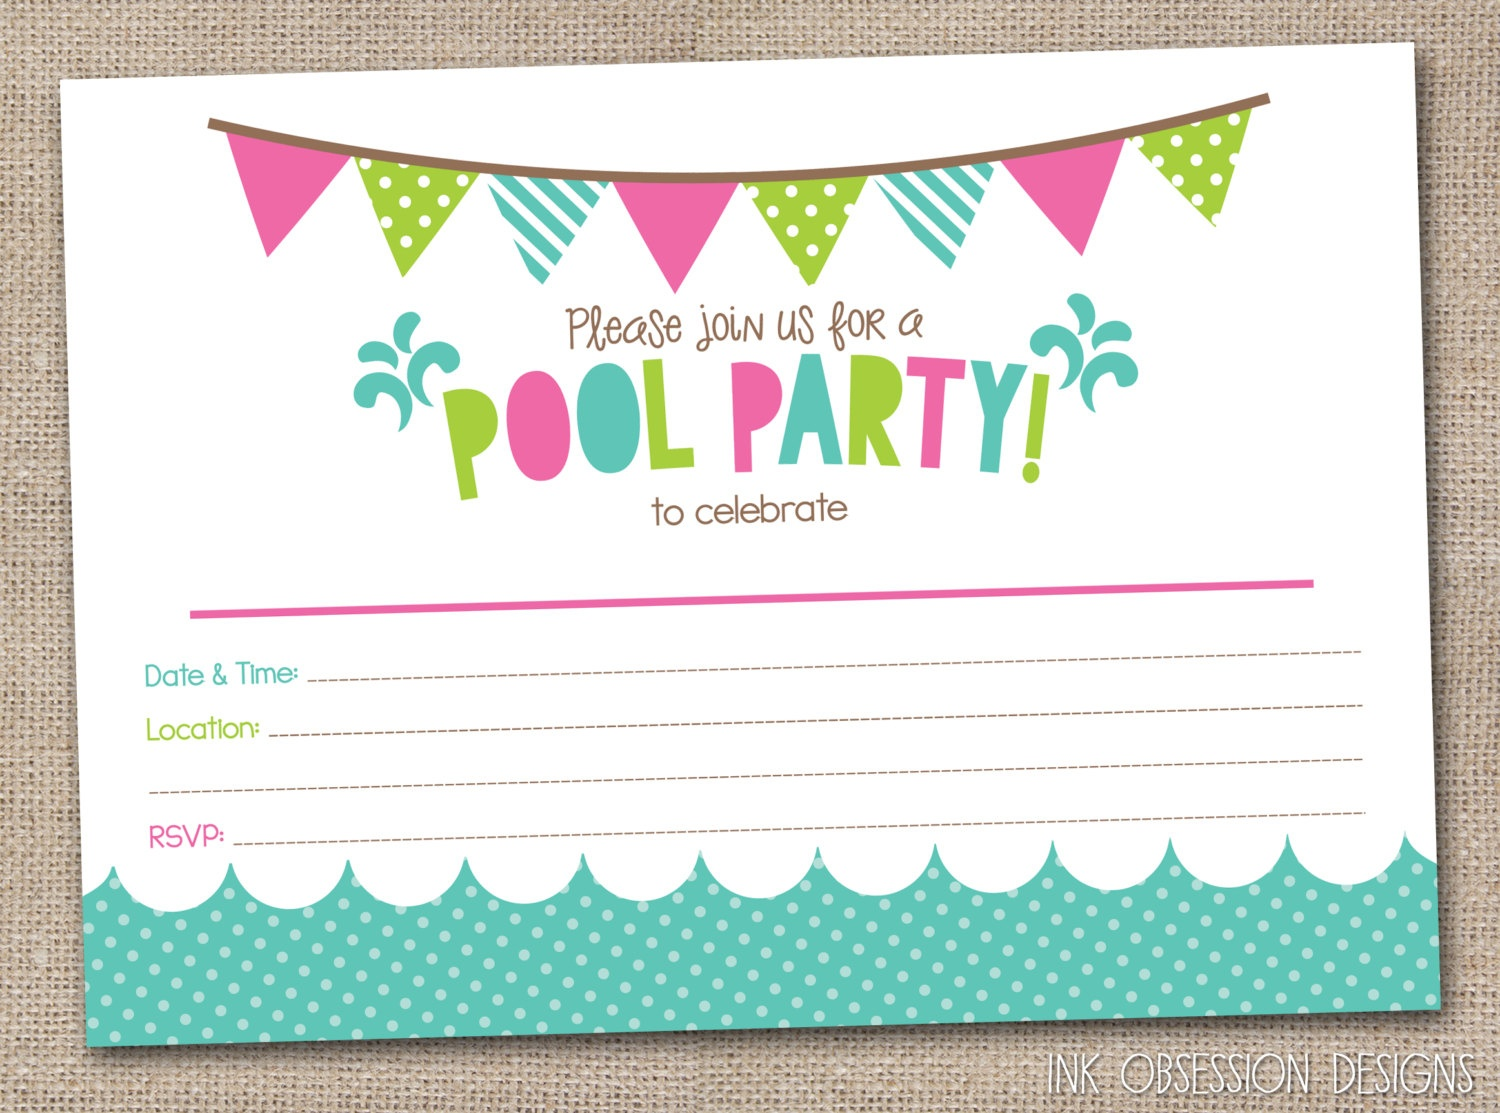 45 Pool Party Invitations | Kittybabylove - Free Printable Pool Party Invitation Cards